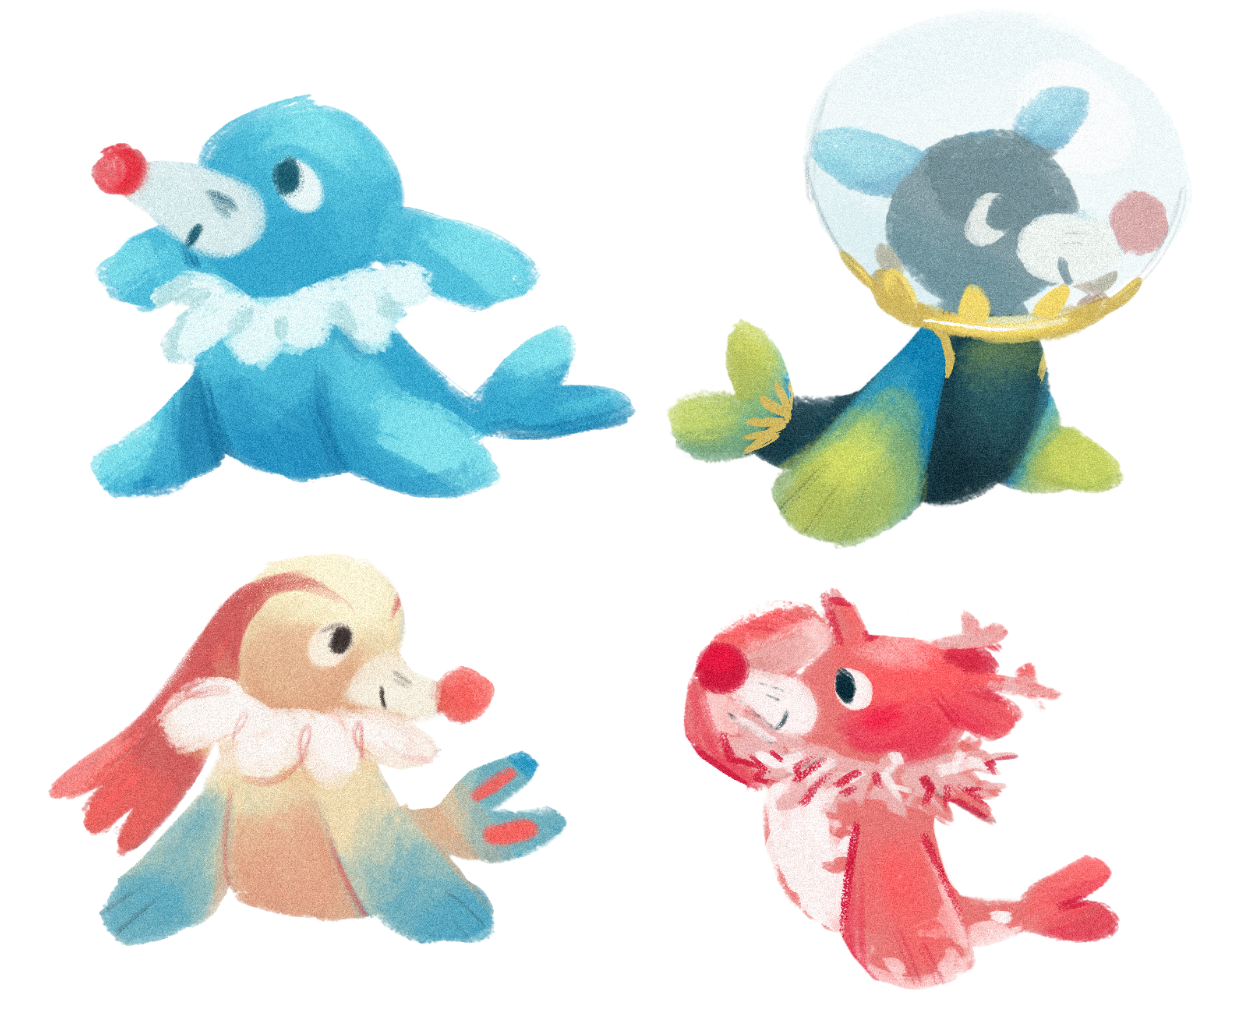 """b8cdd19d 20joules: """"popplio variations!! lucky me got a female popplio so now my  primarina's gonna have cute kids ;0 (original, dewpider, milotic, corsola!)  """""""